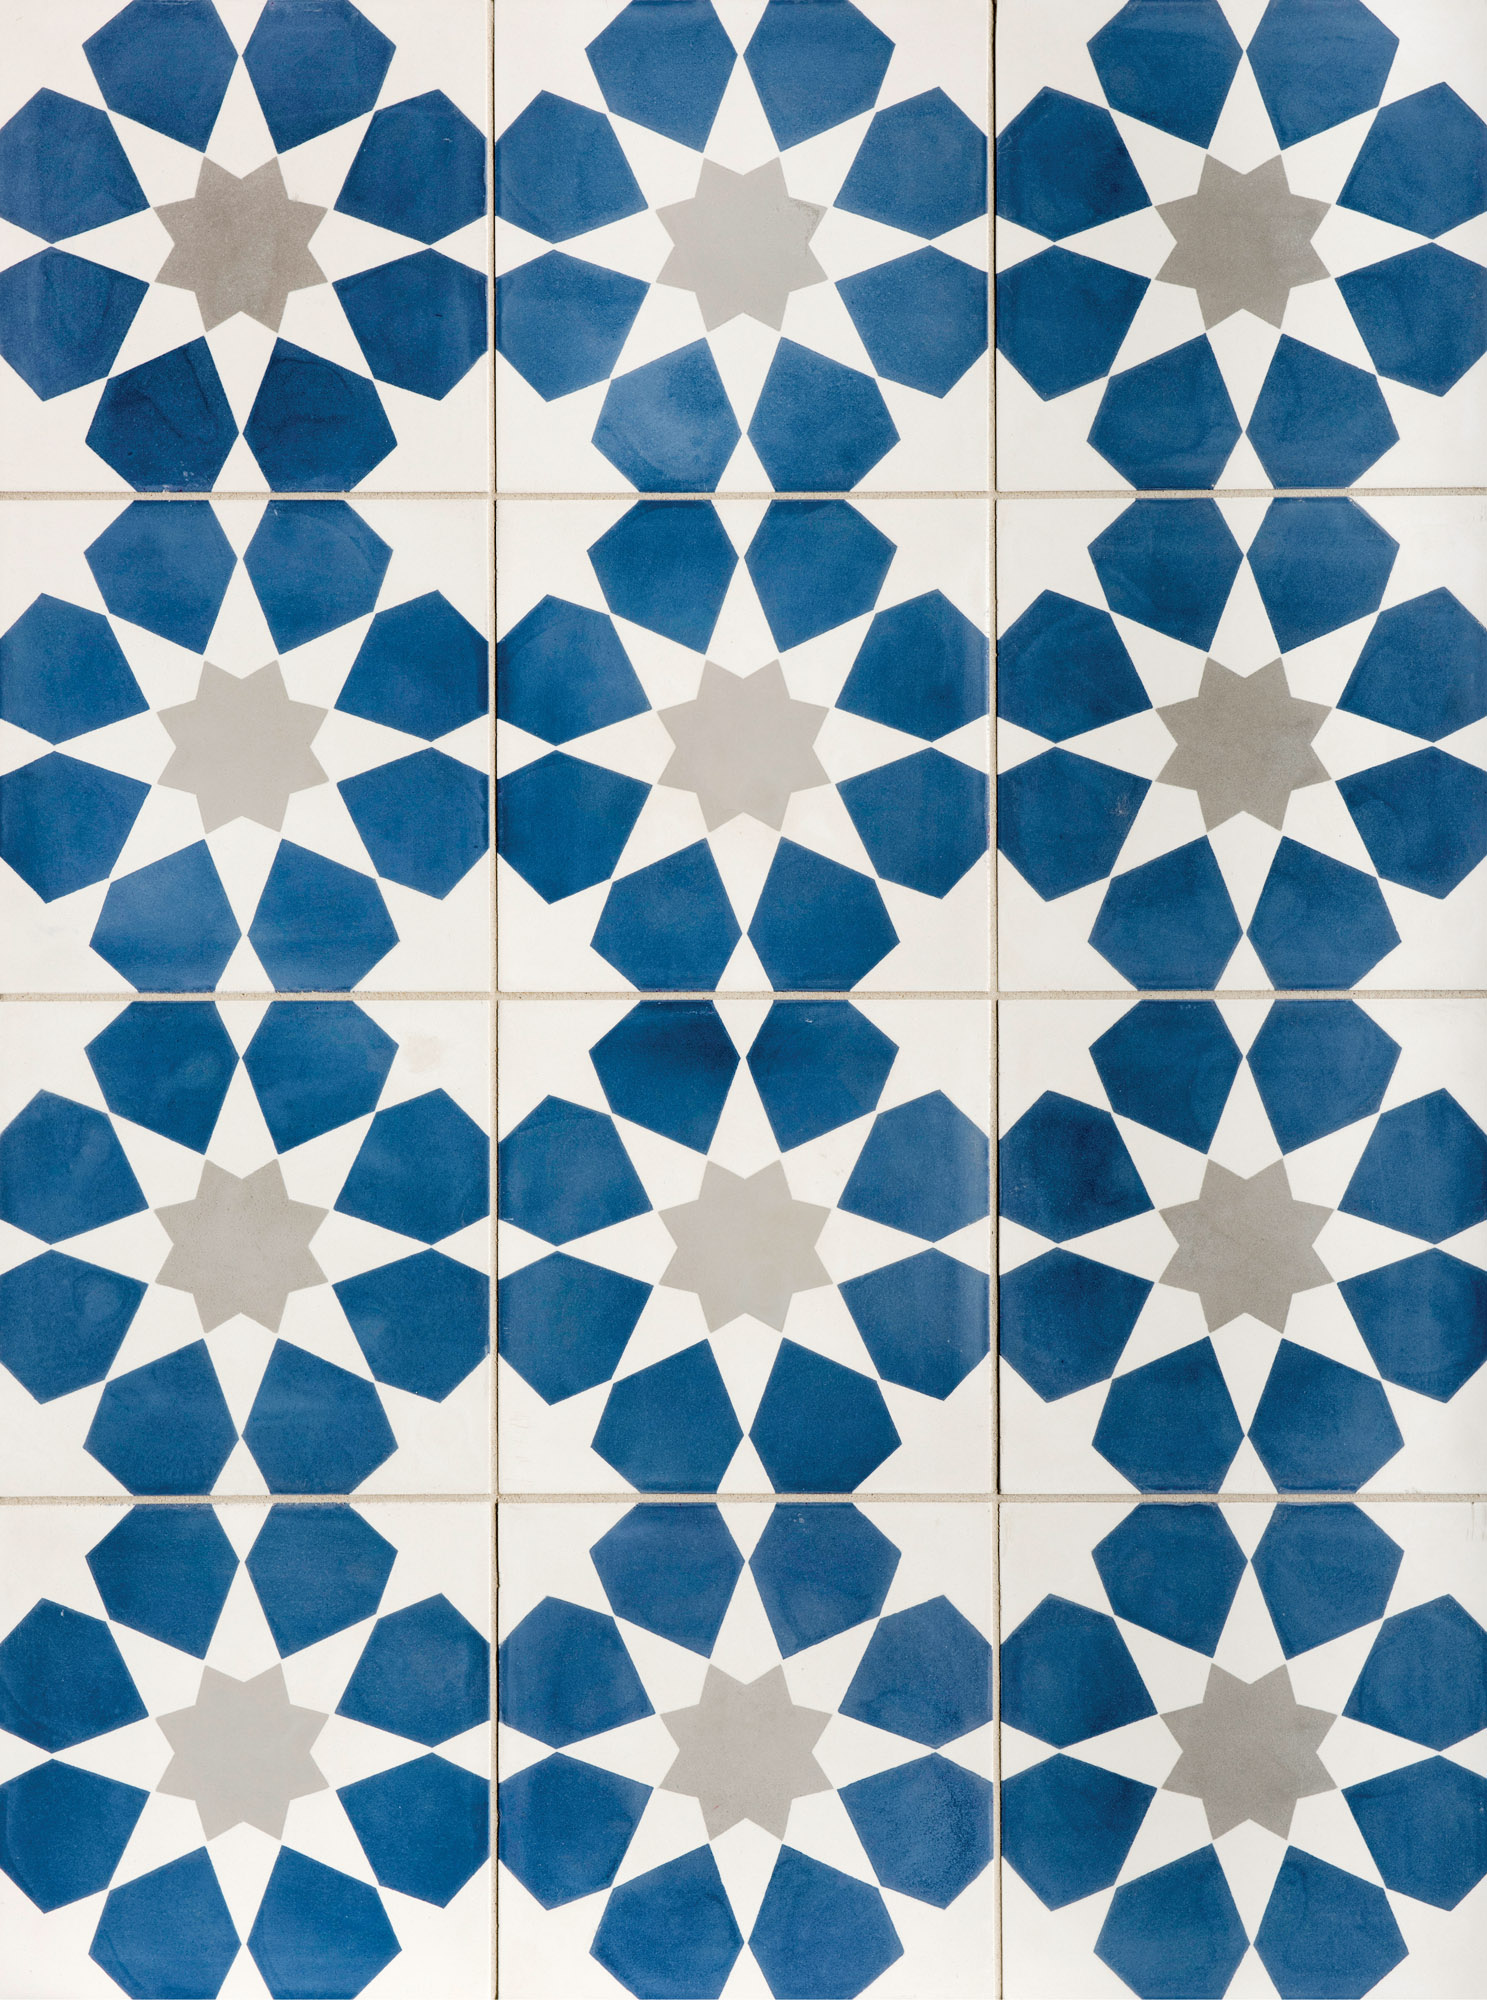 Indigo and gray star patterned tiles from Walker Zanger.